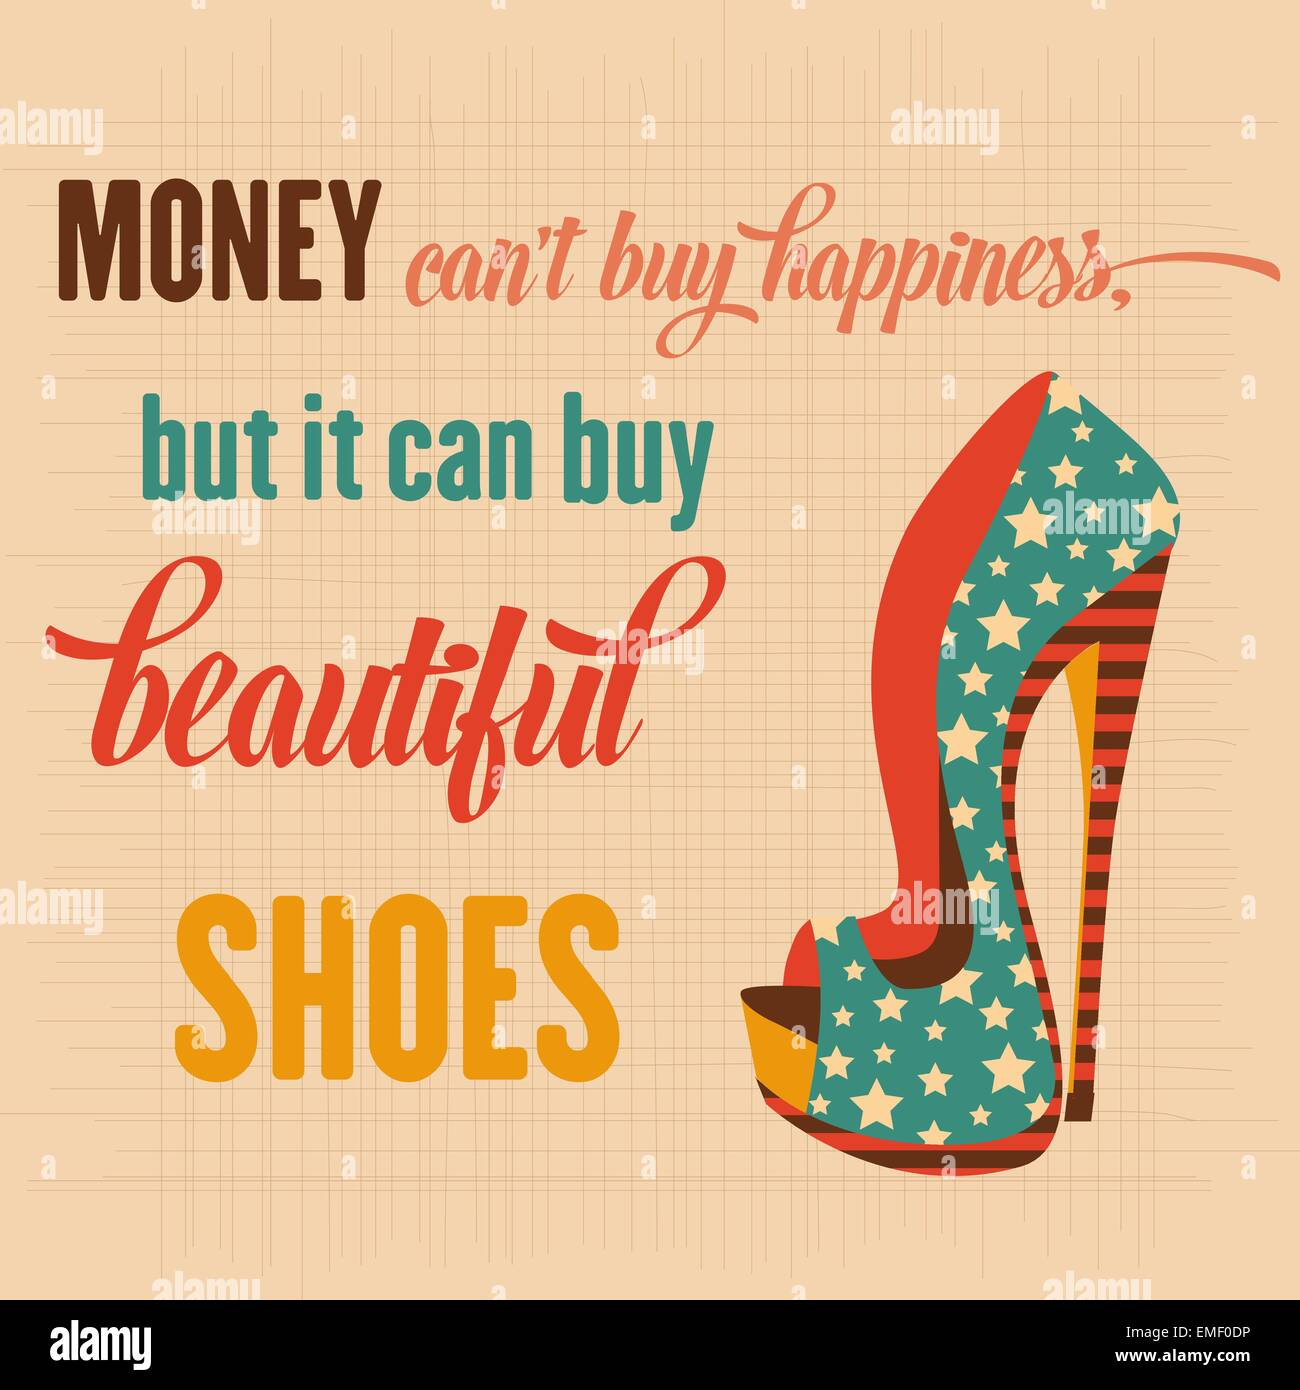 Stock Quote For T: Money Can't Buy Happiness, But It Can Buy Beautiful Shoes